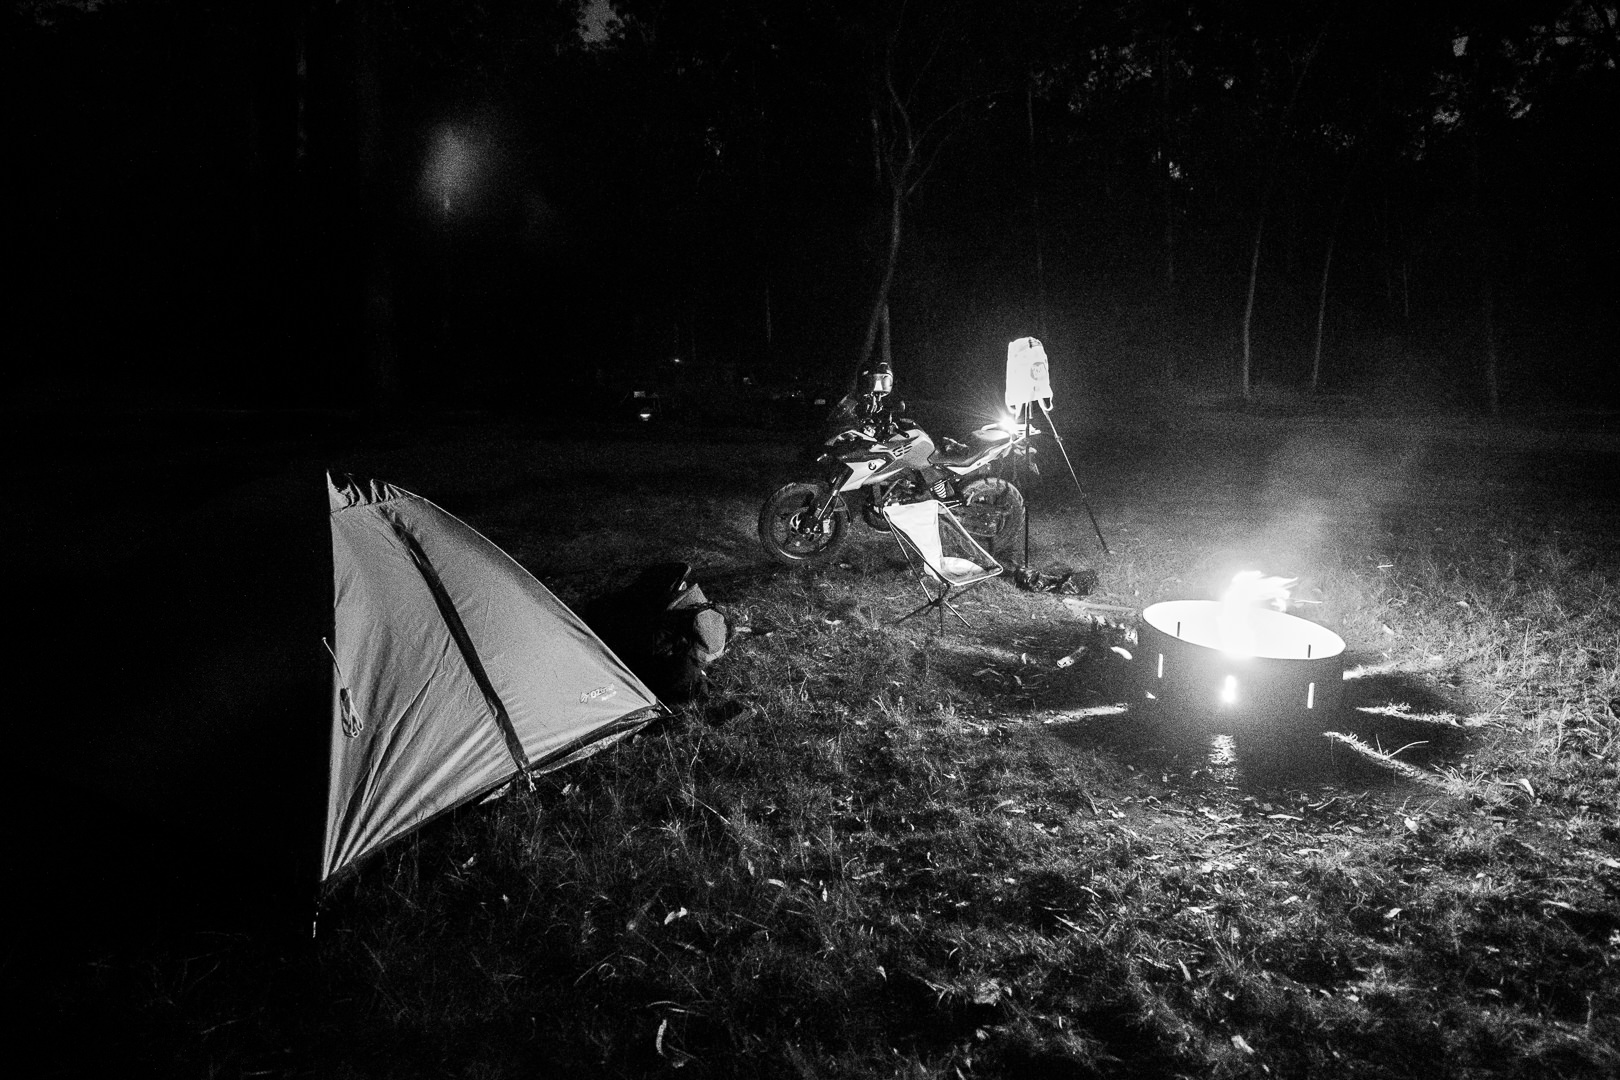 Camping with the BMW G310GS